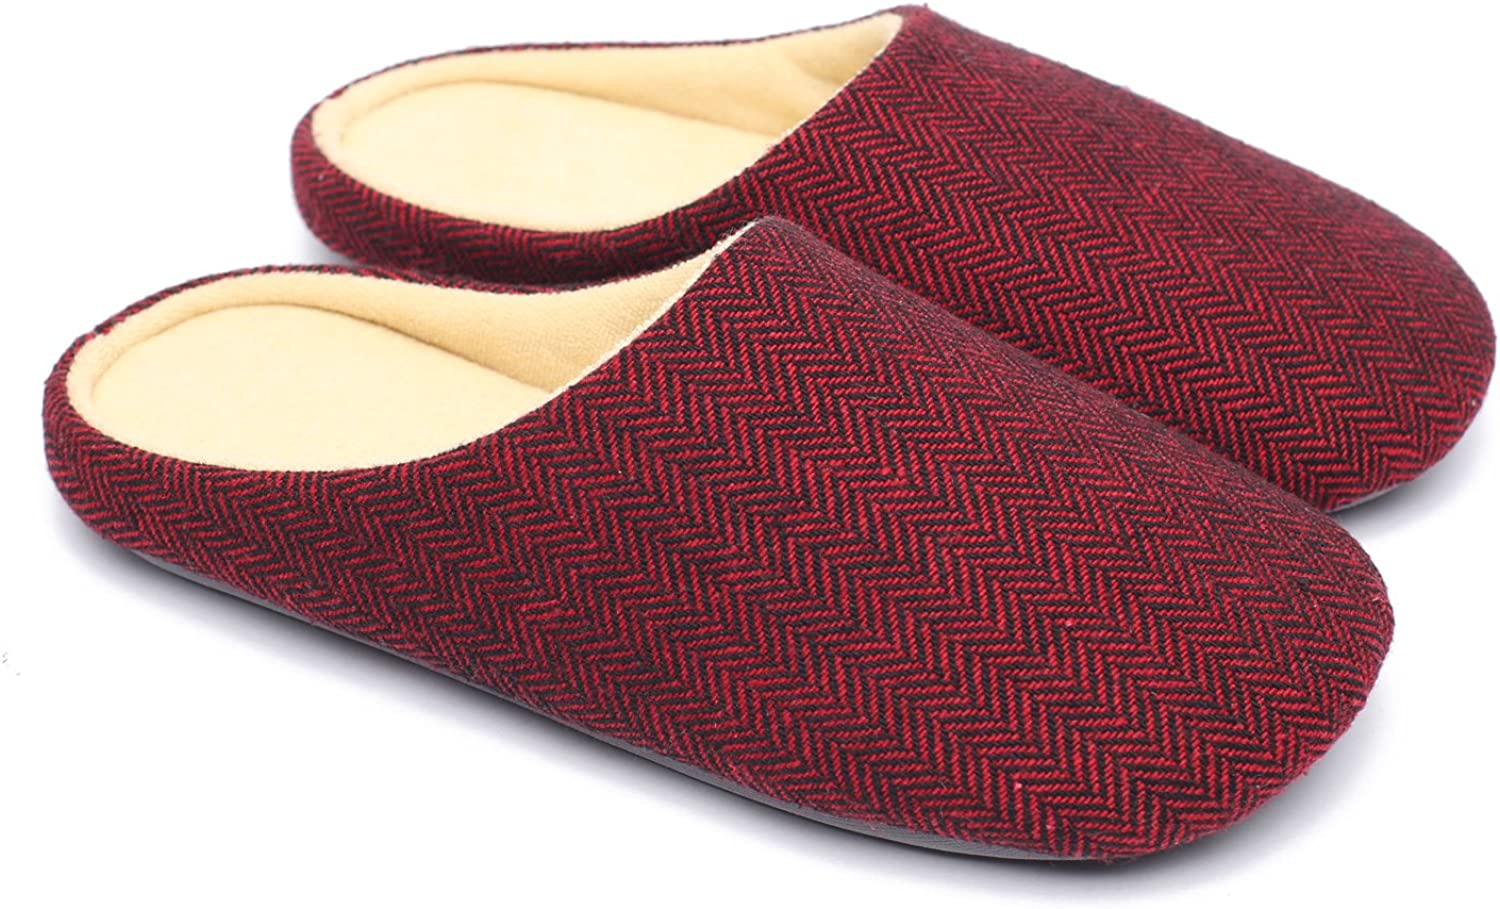 Ofoot Mens & Womens Cotton Fabric Terry Lining Memory Foam Slip On House Slippers(7-8 (BM) US, Claret)